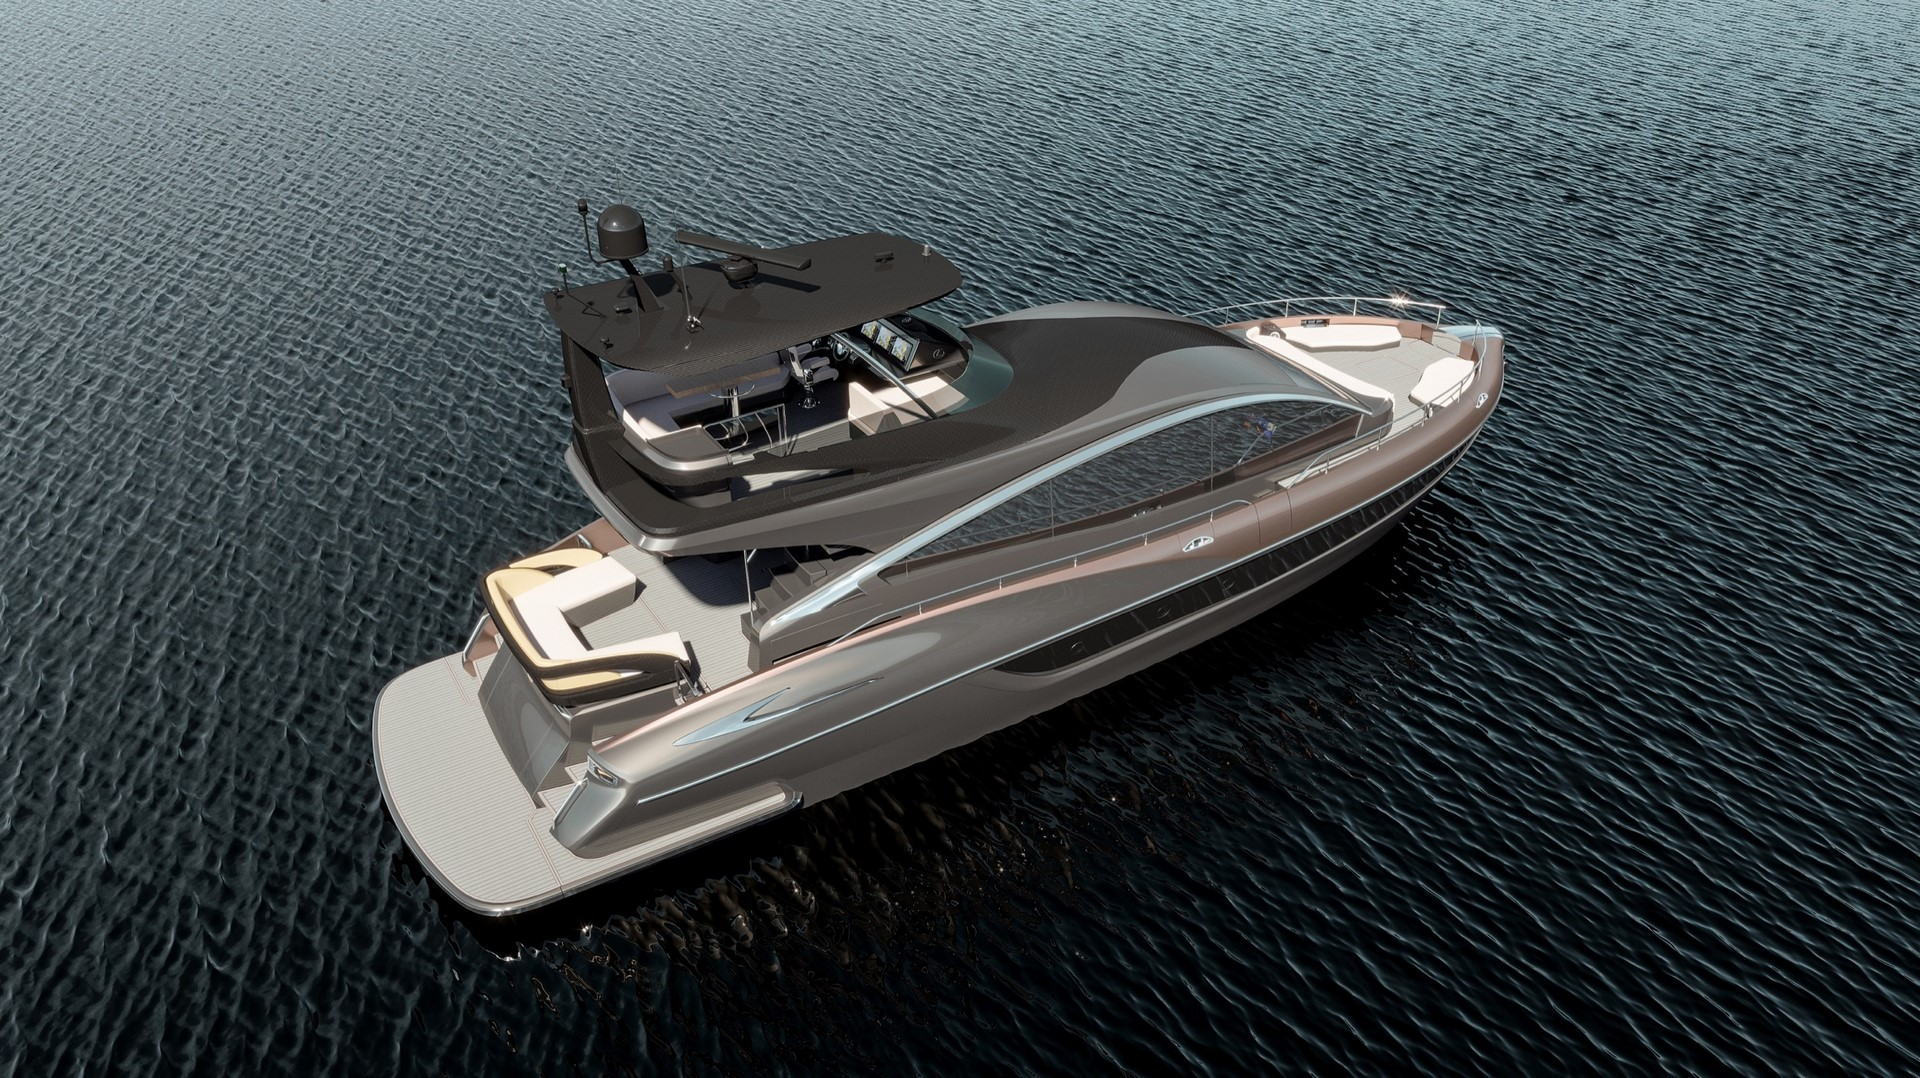 Lexus LY 650 luxury yacht (4)